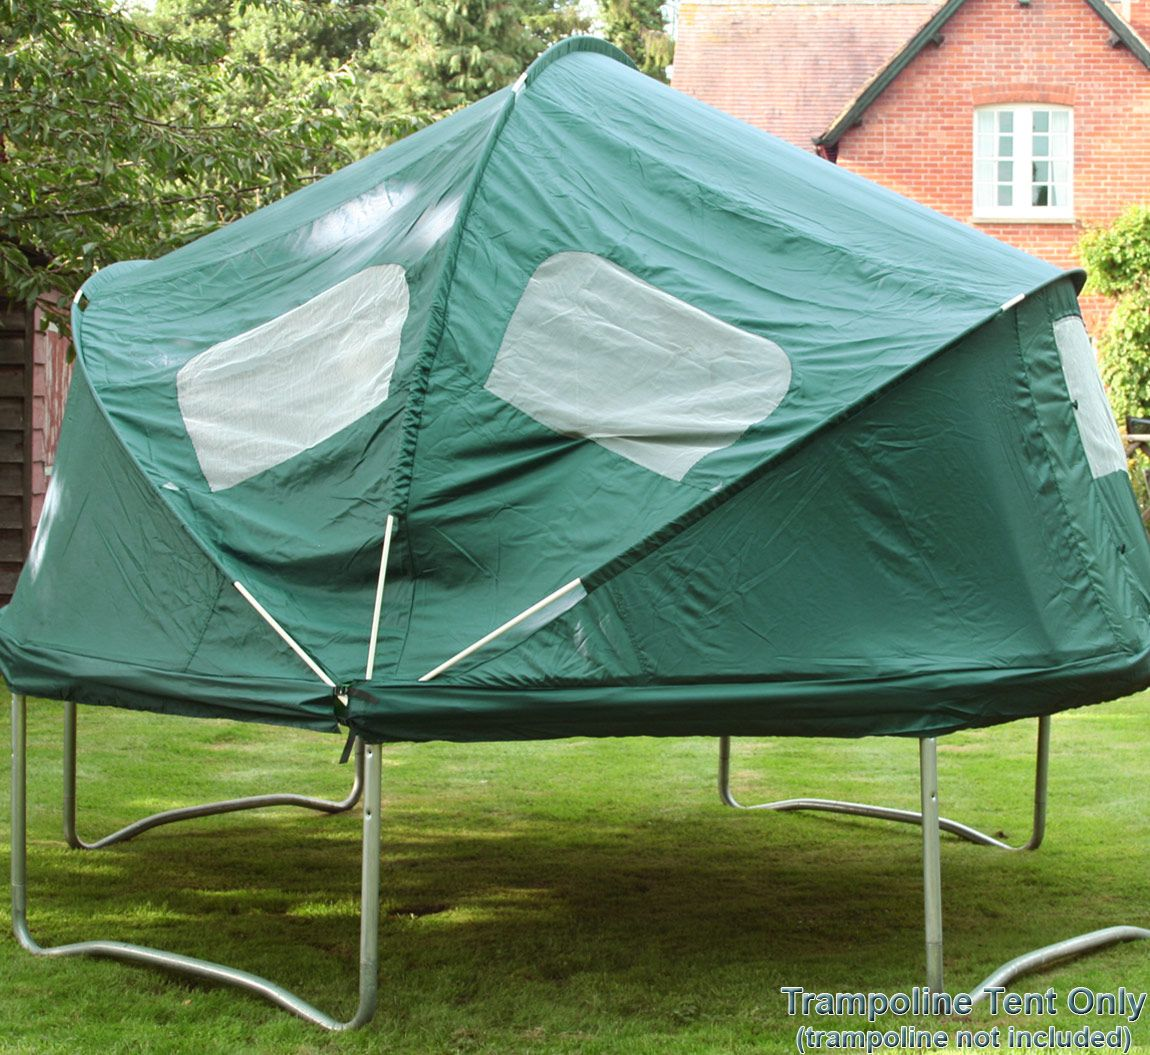 14ft Tr&oline Tent & 14ft Trampoline Tent | Outdoors | Pinterest | Trampoline tent ...